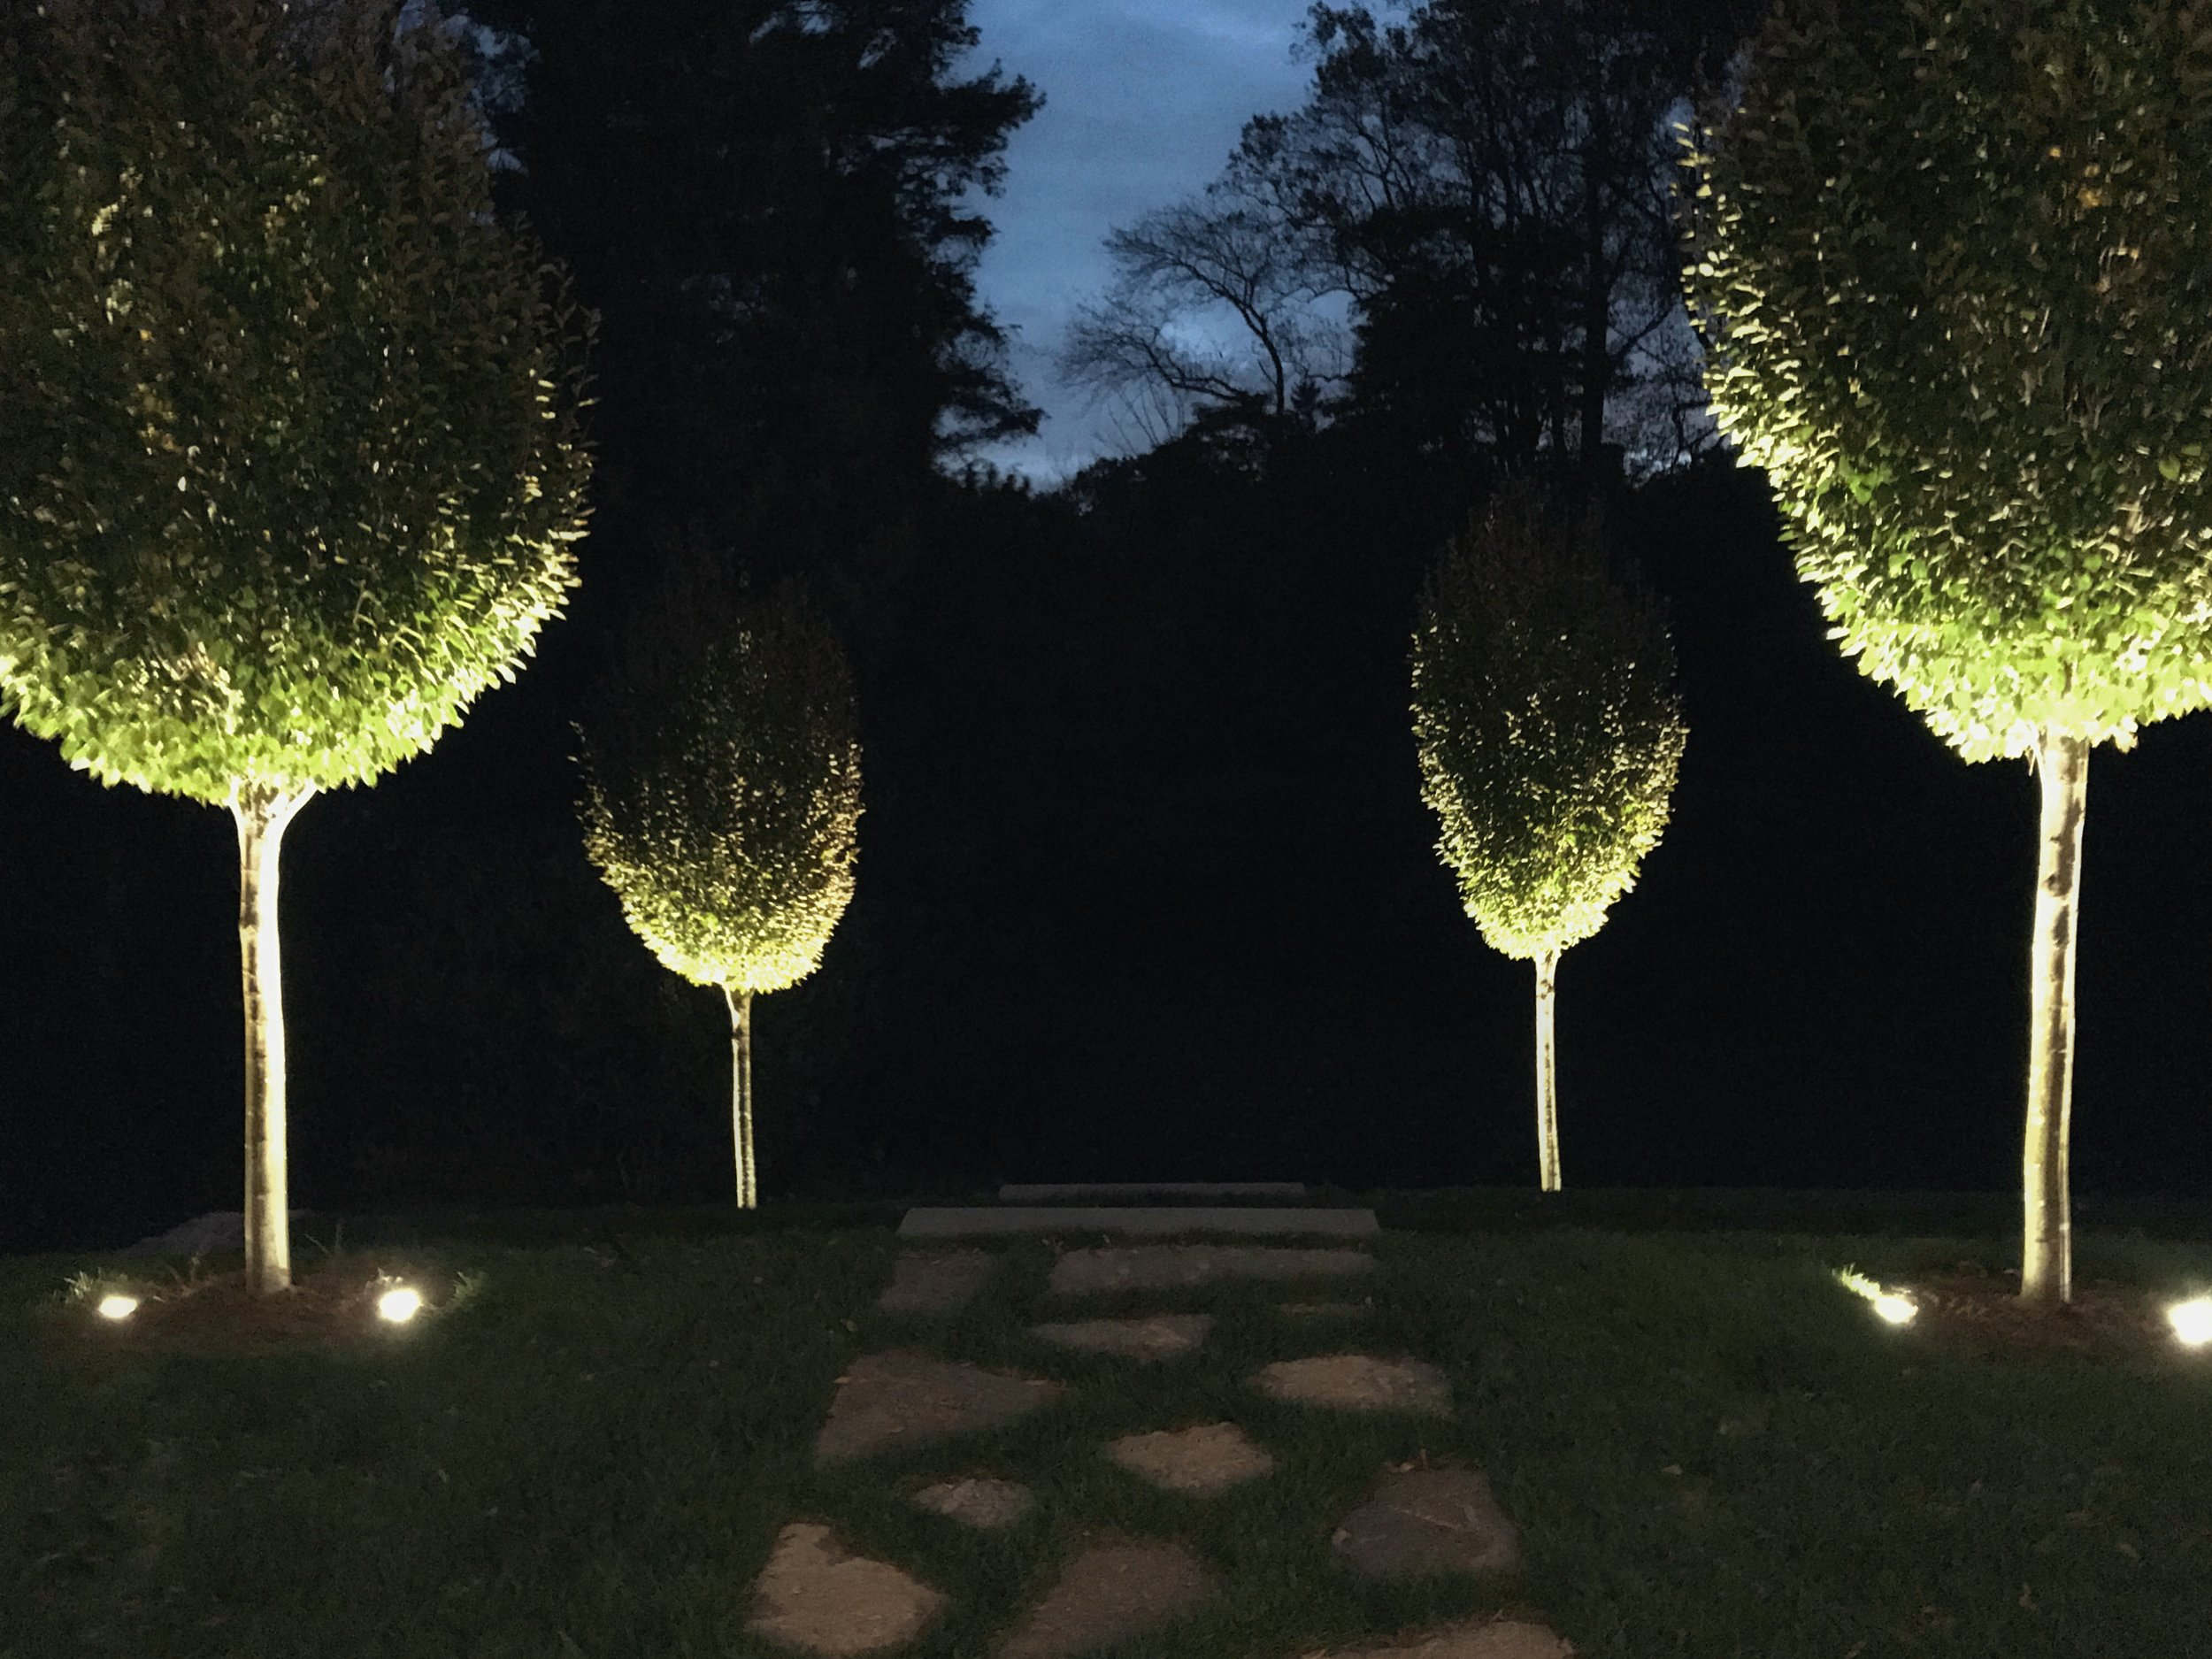 Night view of trees